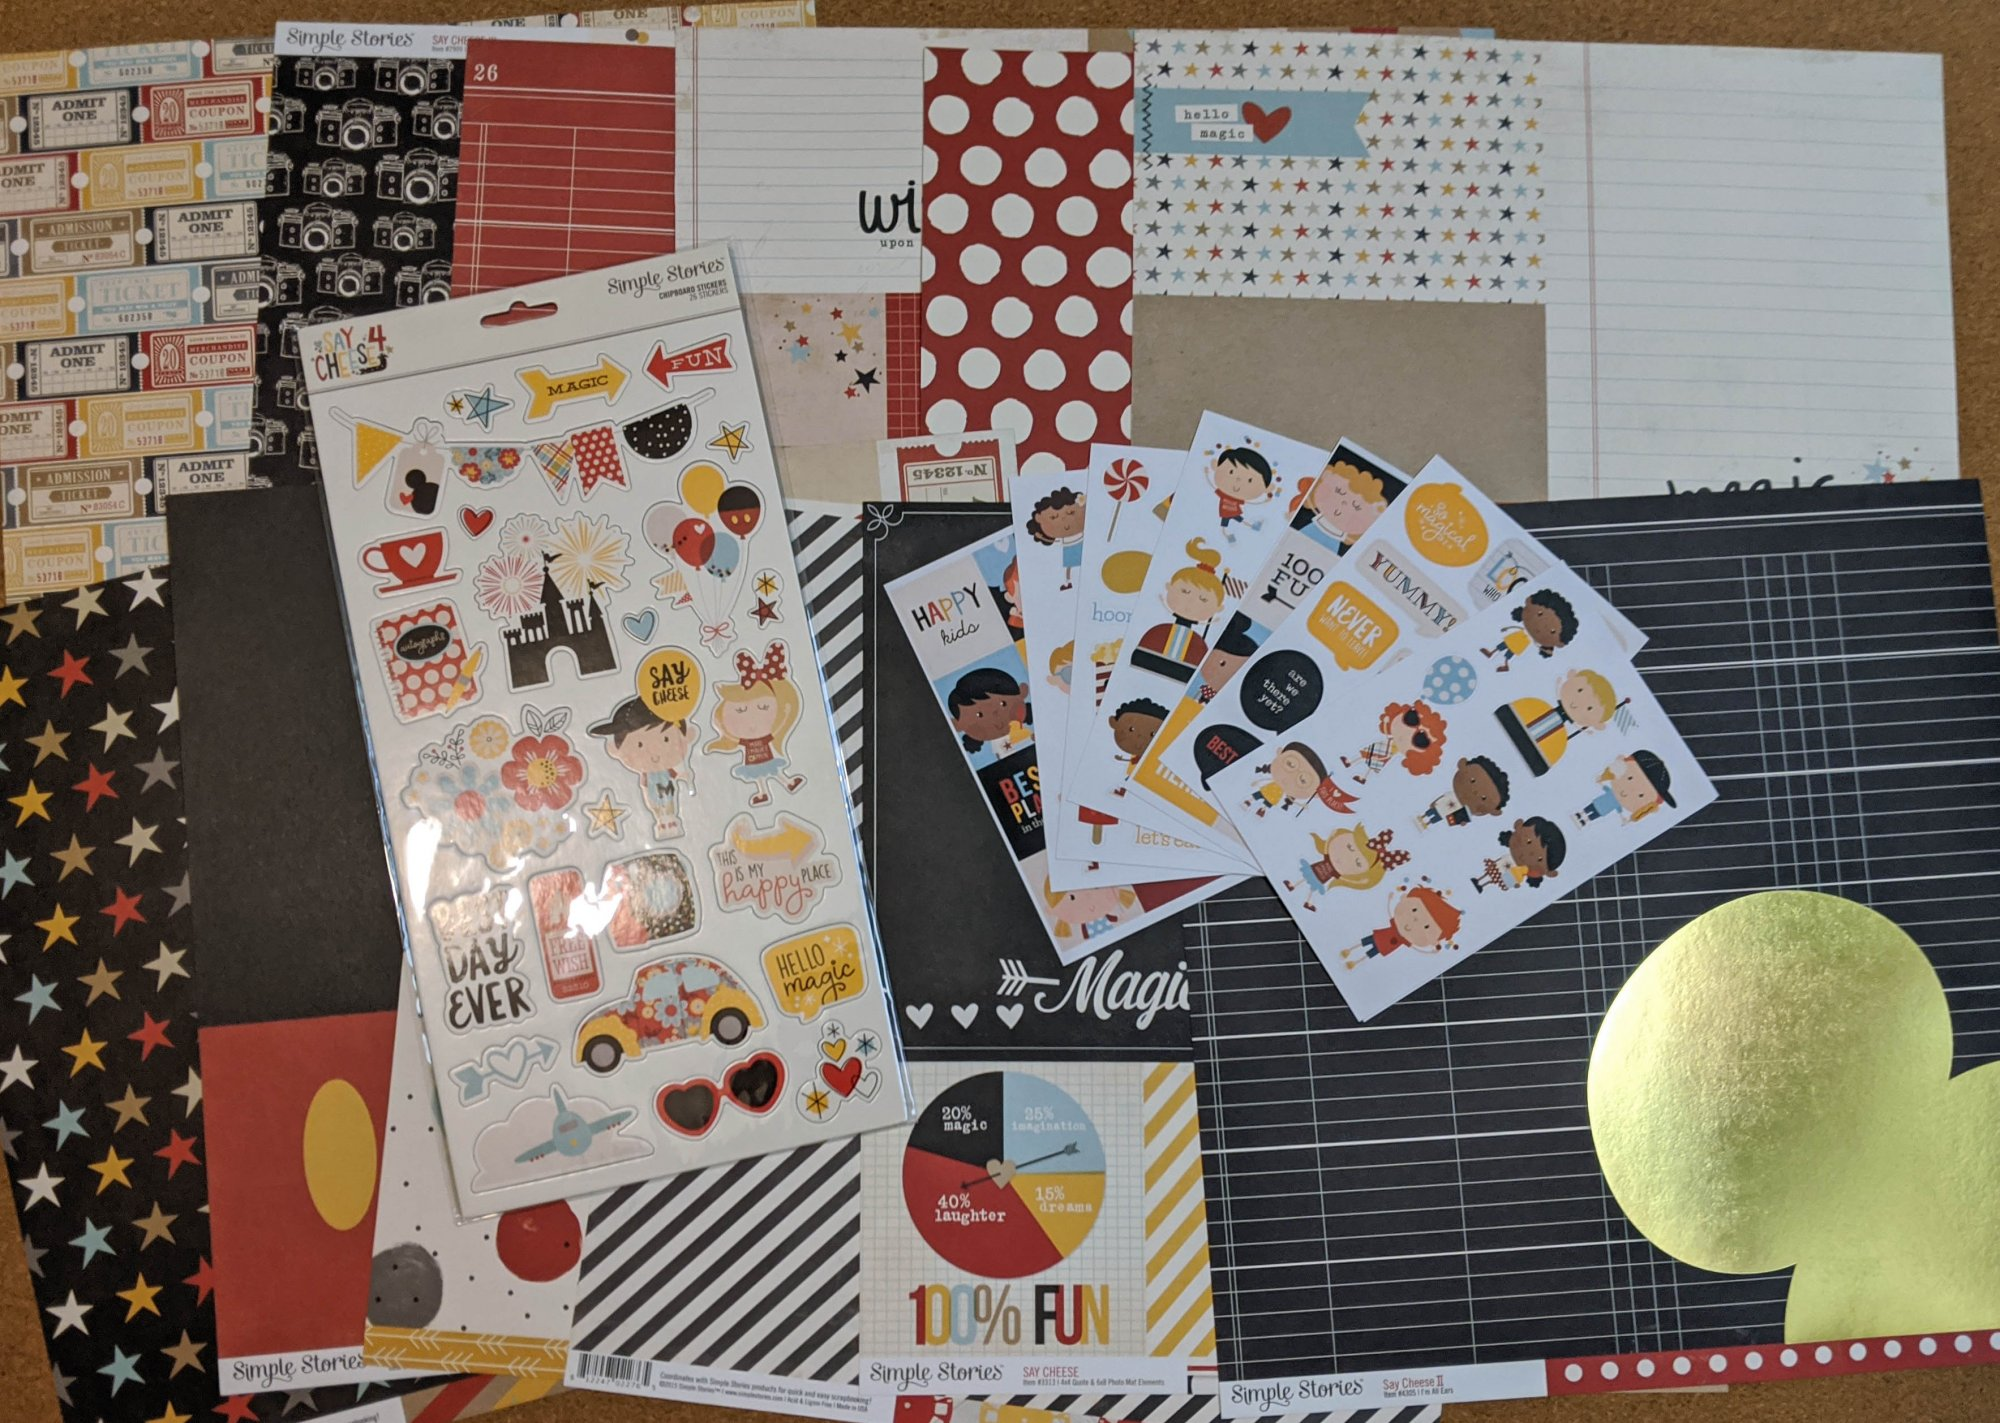 Say Cheese 12x12 Paper Kit with Embellishments - Simple Stories